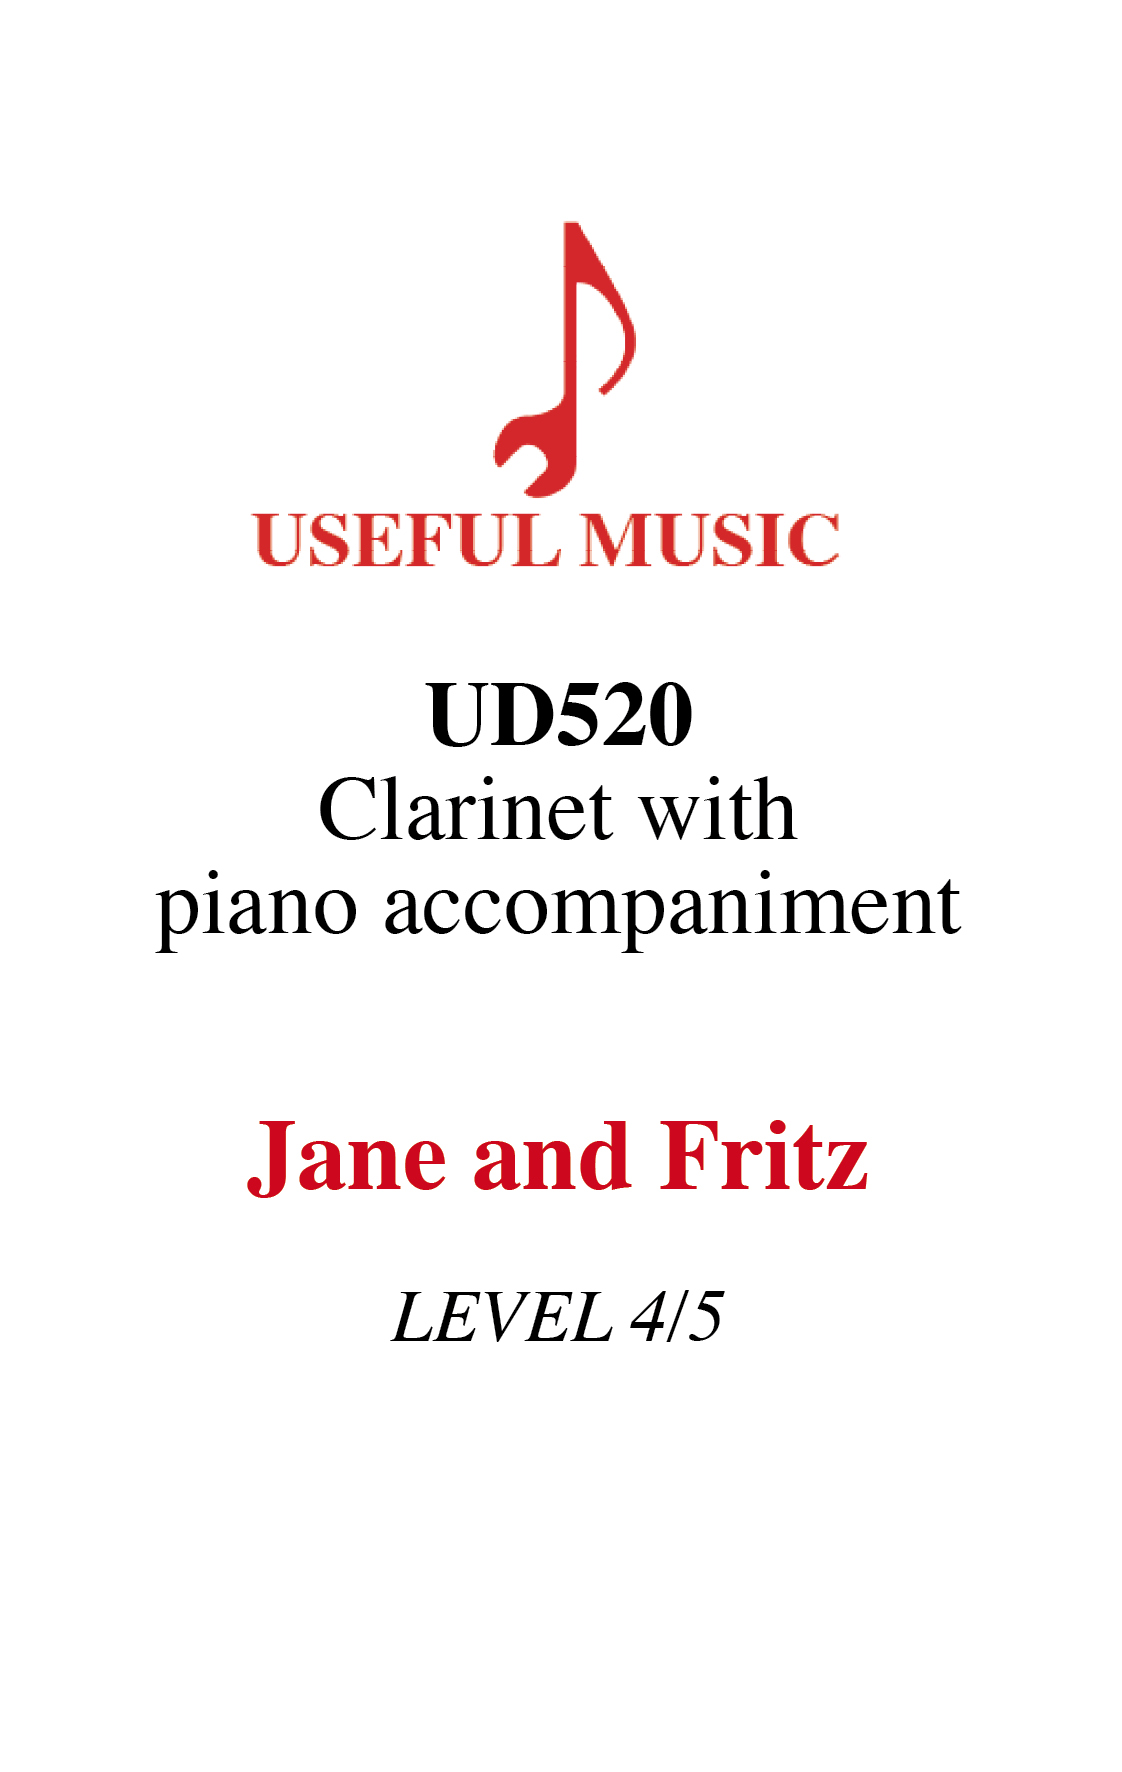 Jane and Fritz - Clarinet with piano accompaniment